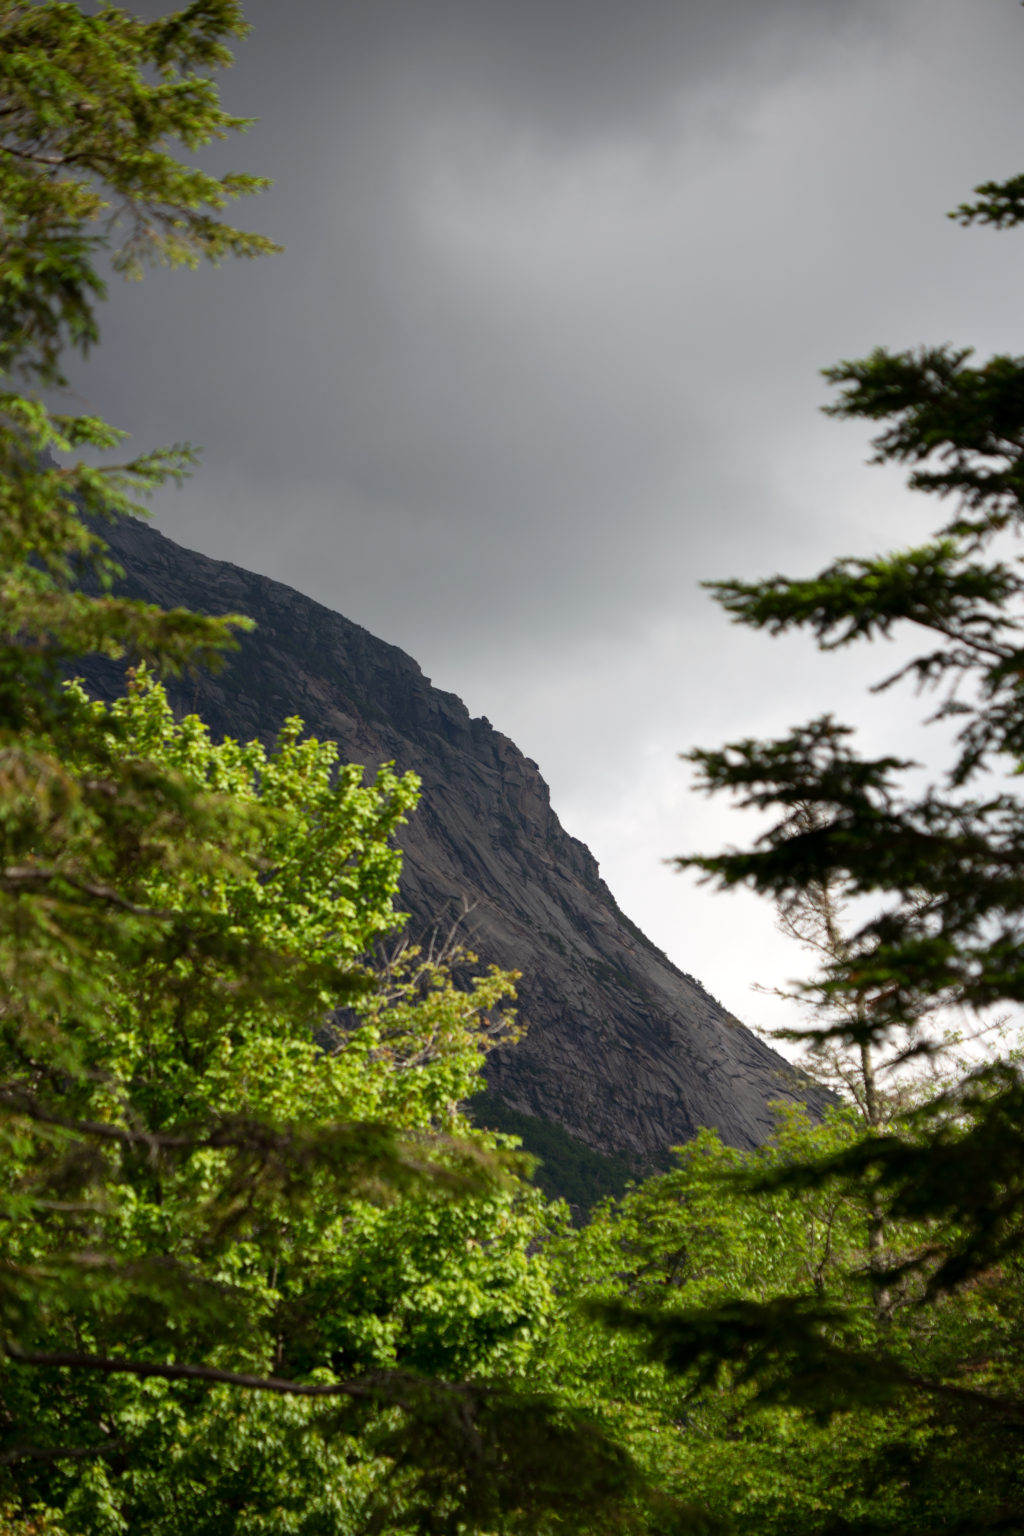 View of Rockslides Through the Trees